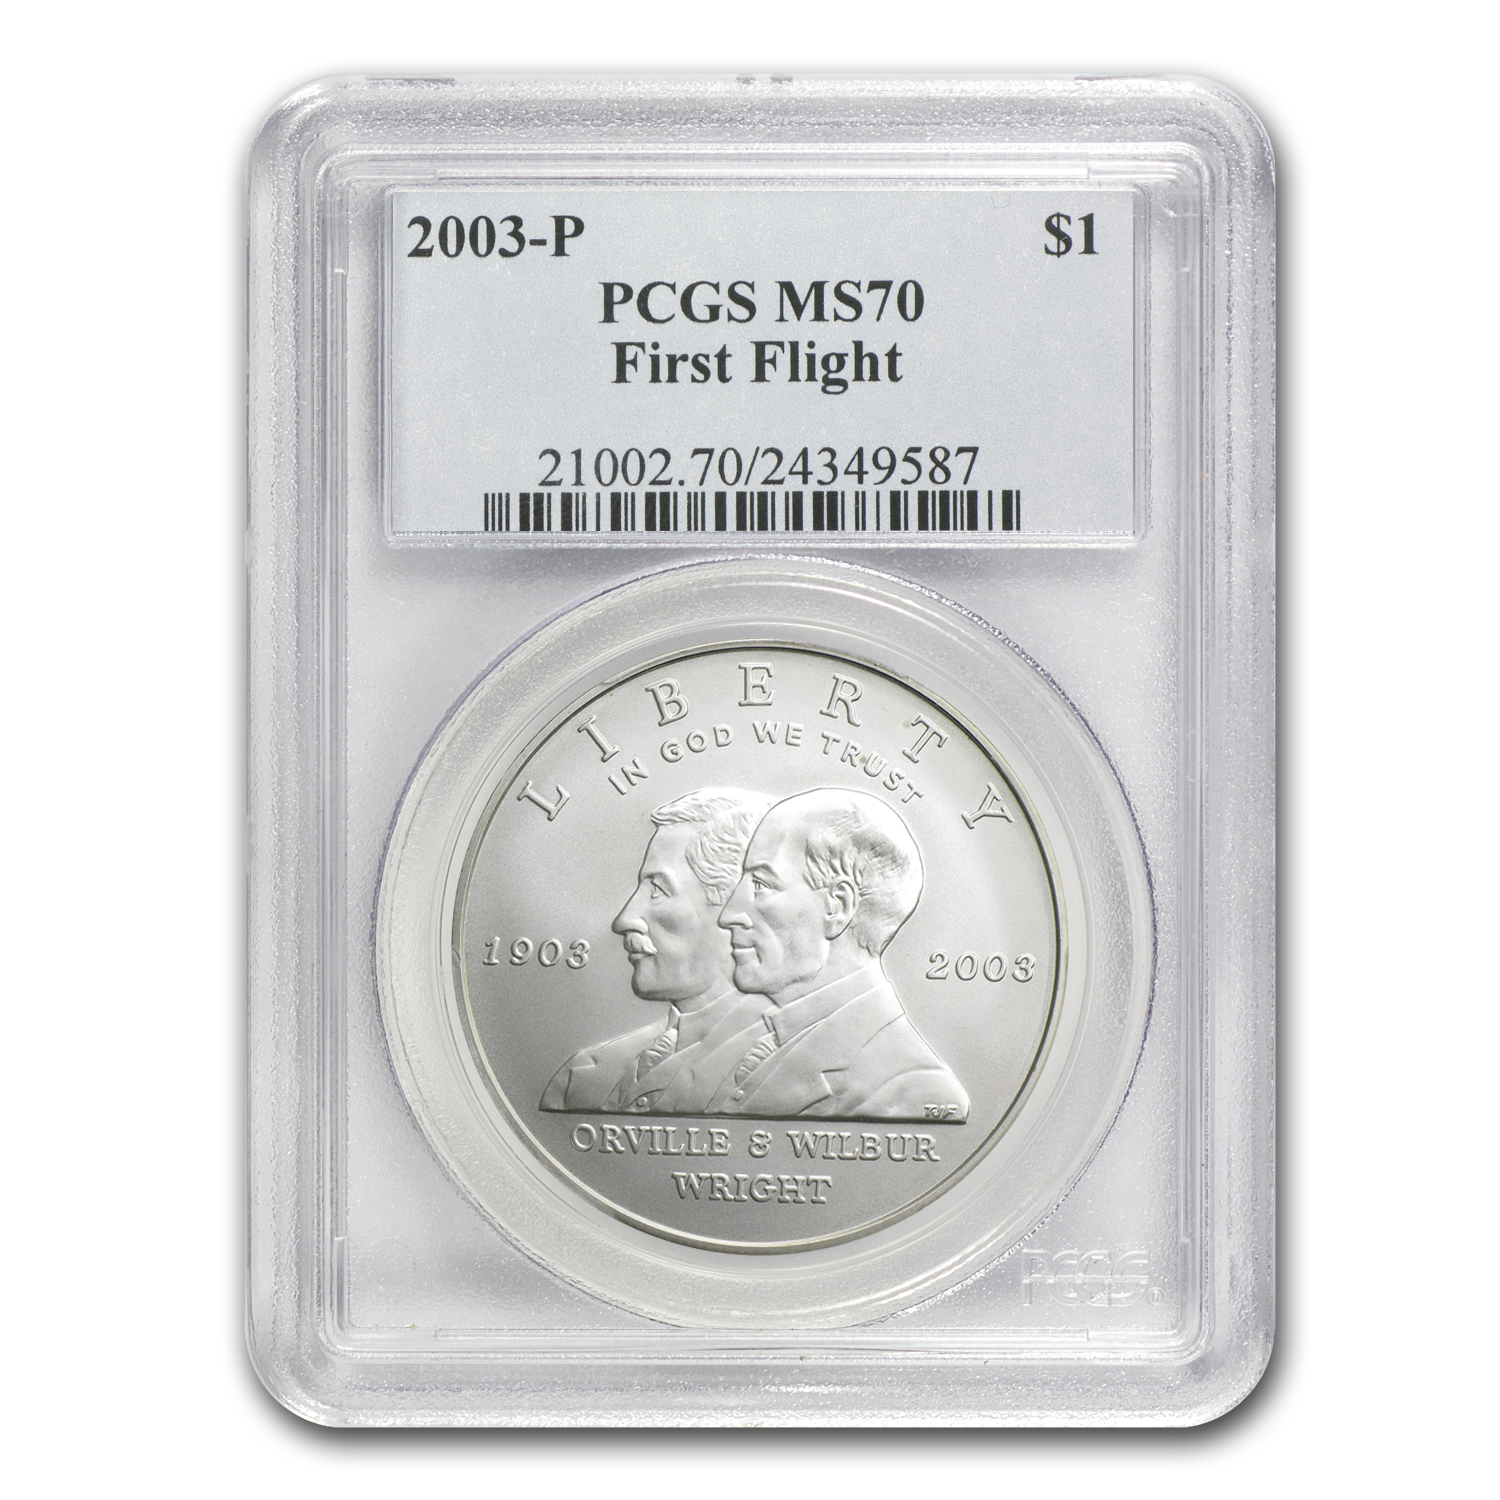 2003-P First Flight Centennial $1 Silver Commem MS-70 PCGS